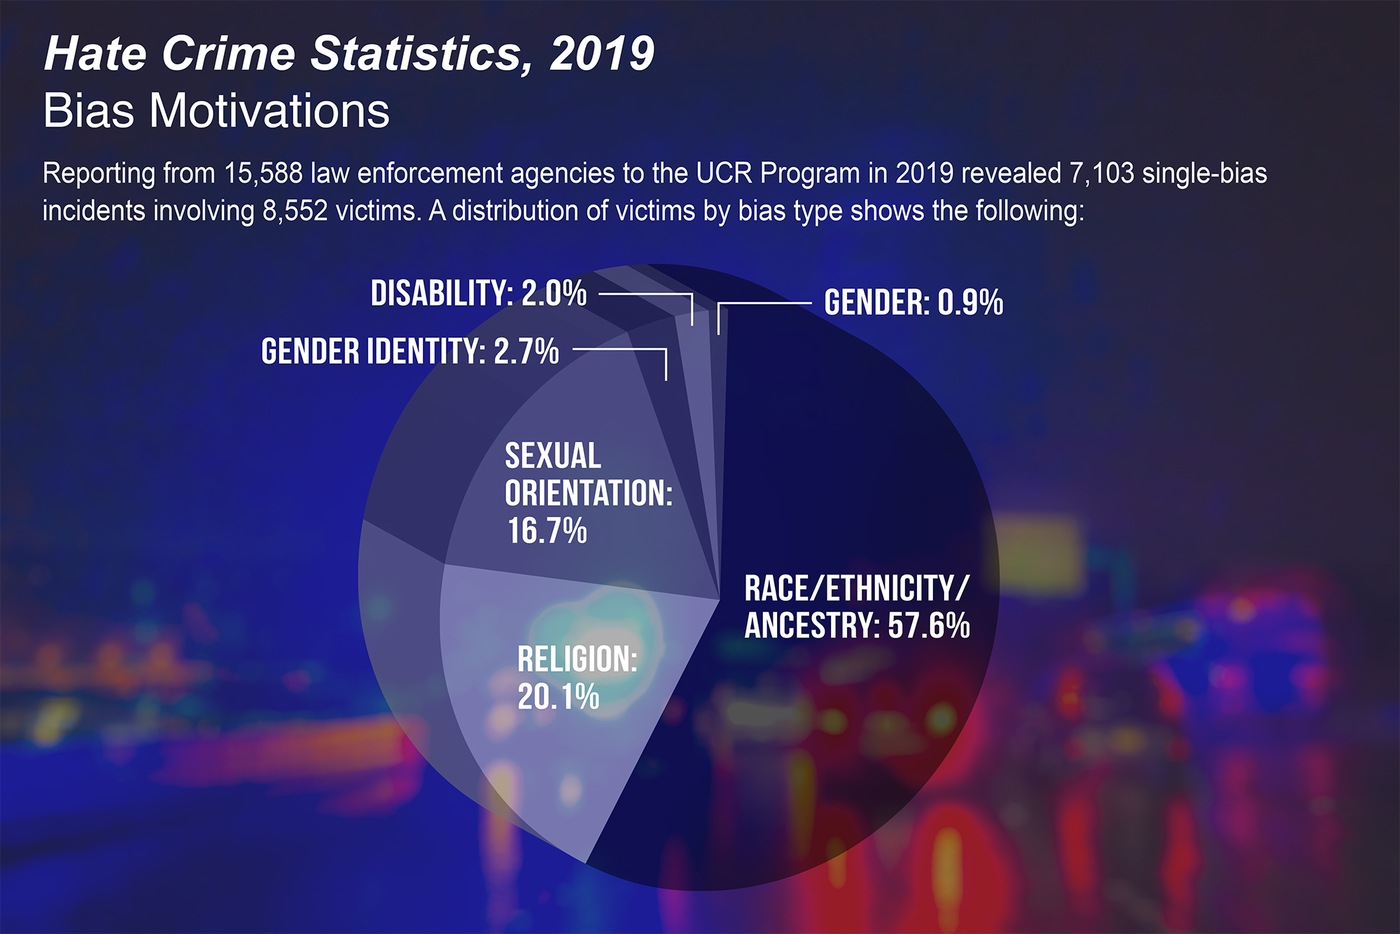 Pie chart depicting breakdown of motivations of bias-motivated crimes in the Hate Crime Statistics, 2019 report.